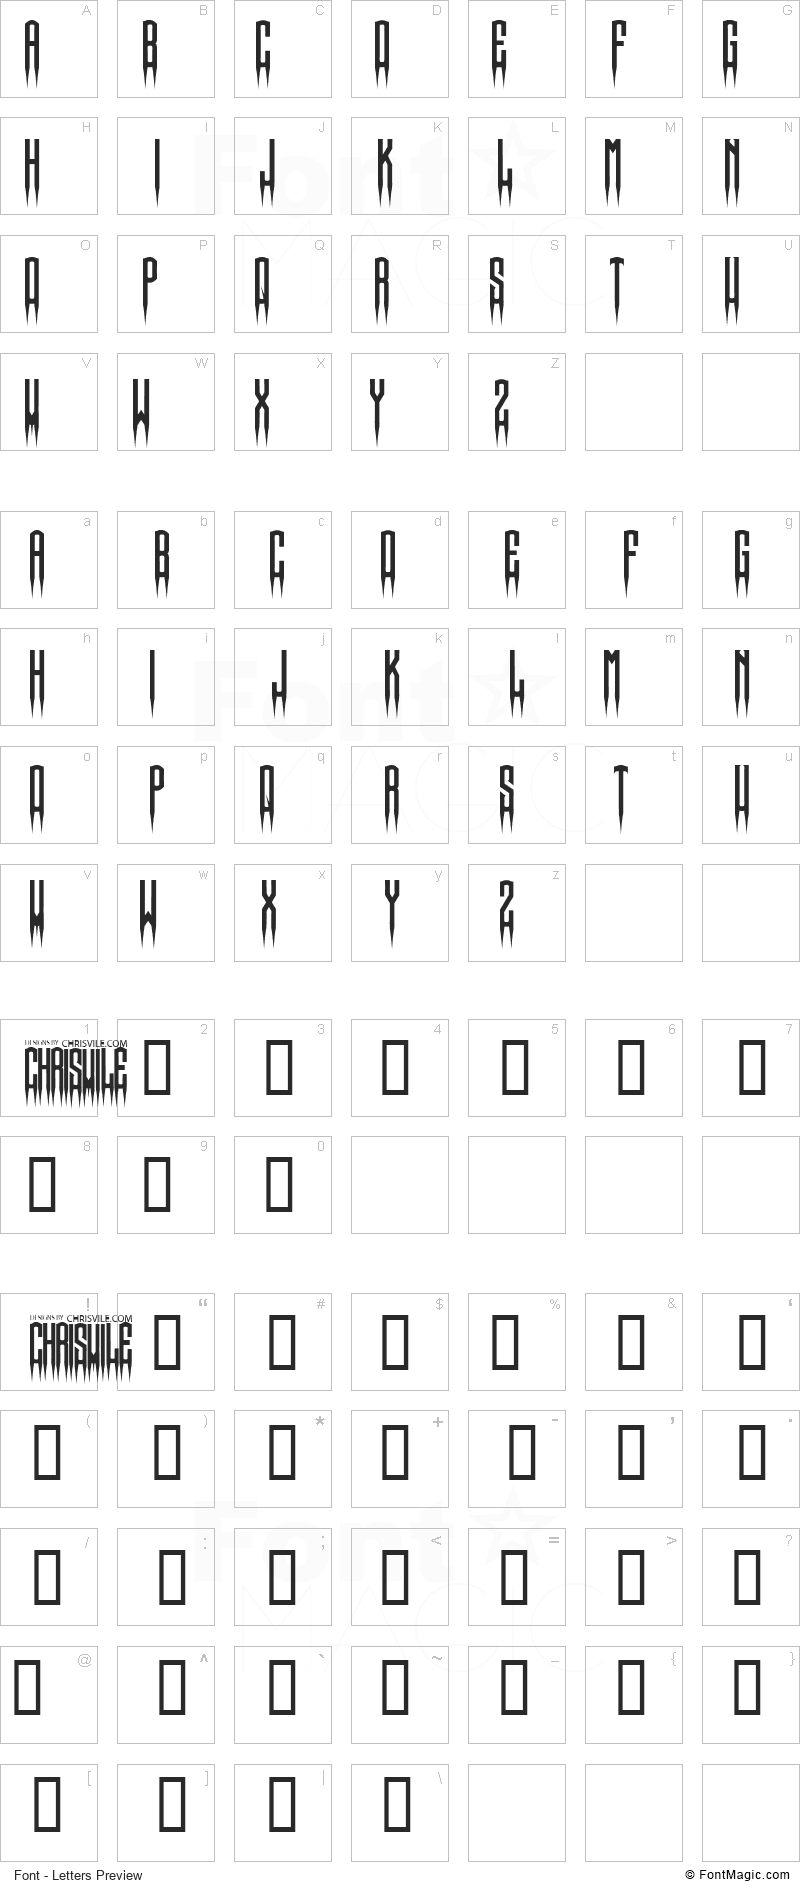 Spiked Font - All Latters Preview Chart